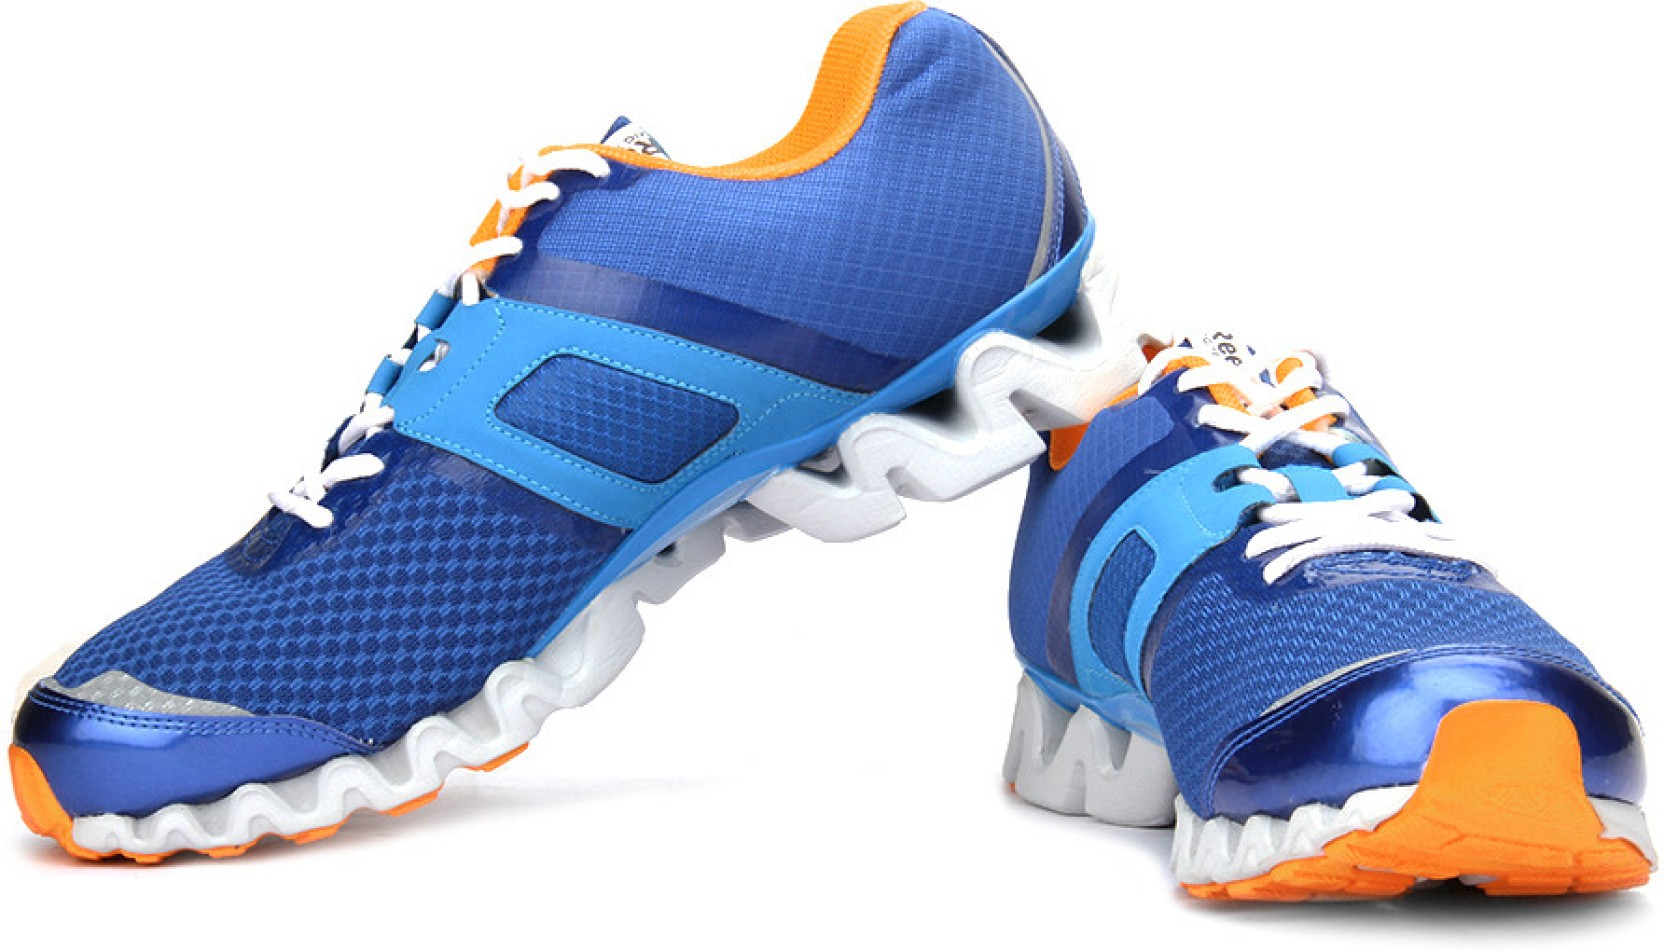 Reebok Zigtech Shoes Price In India